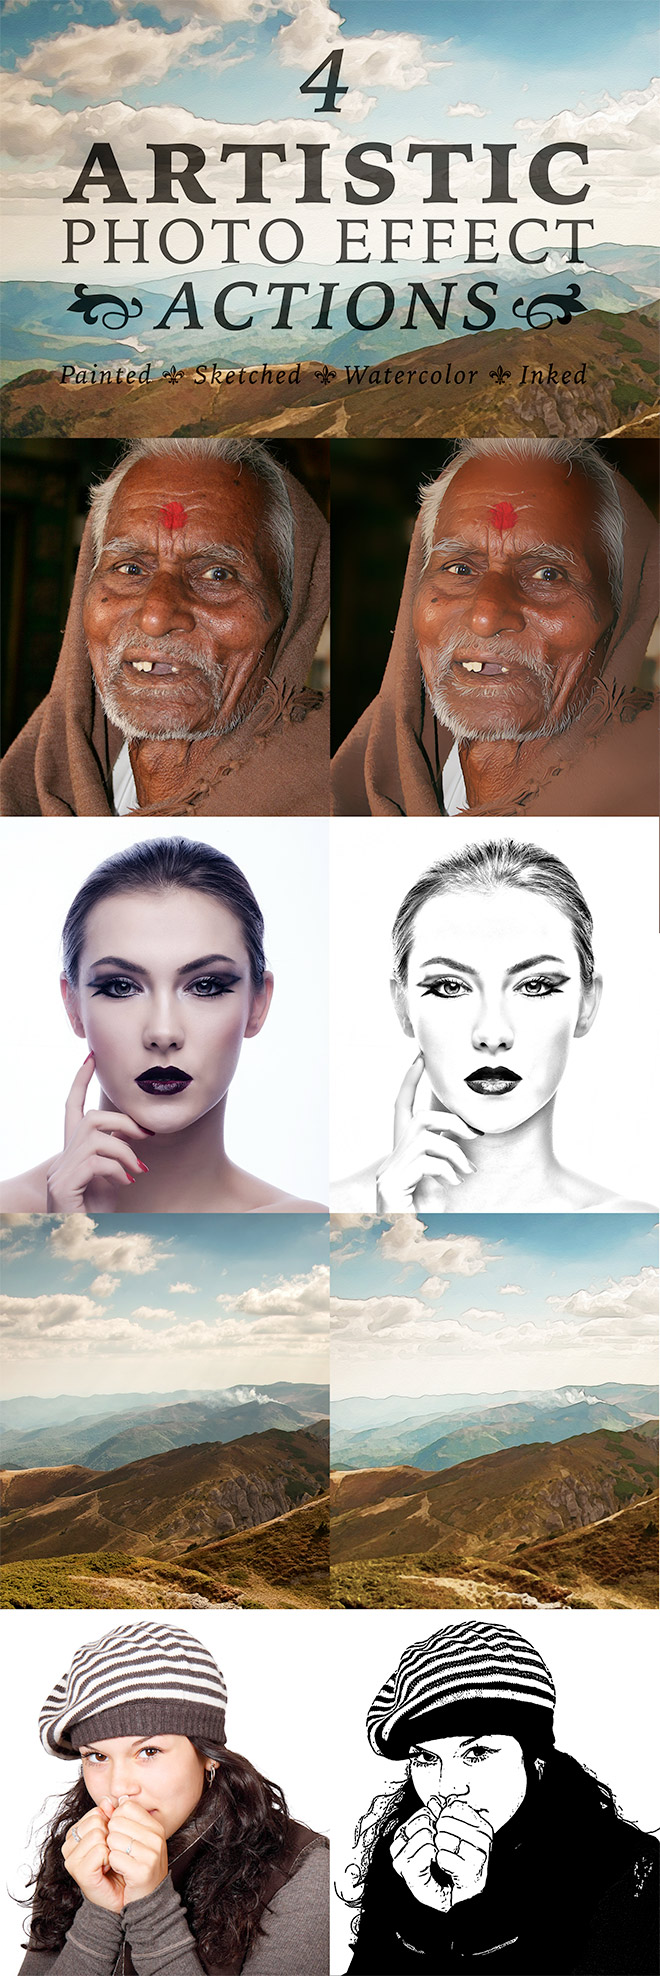 Artistic Photo Effect Actions